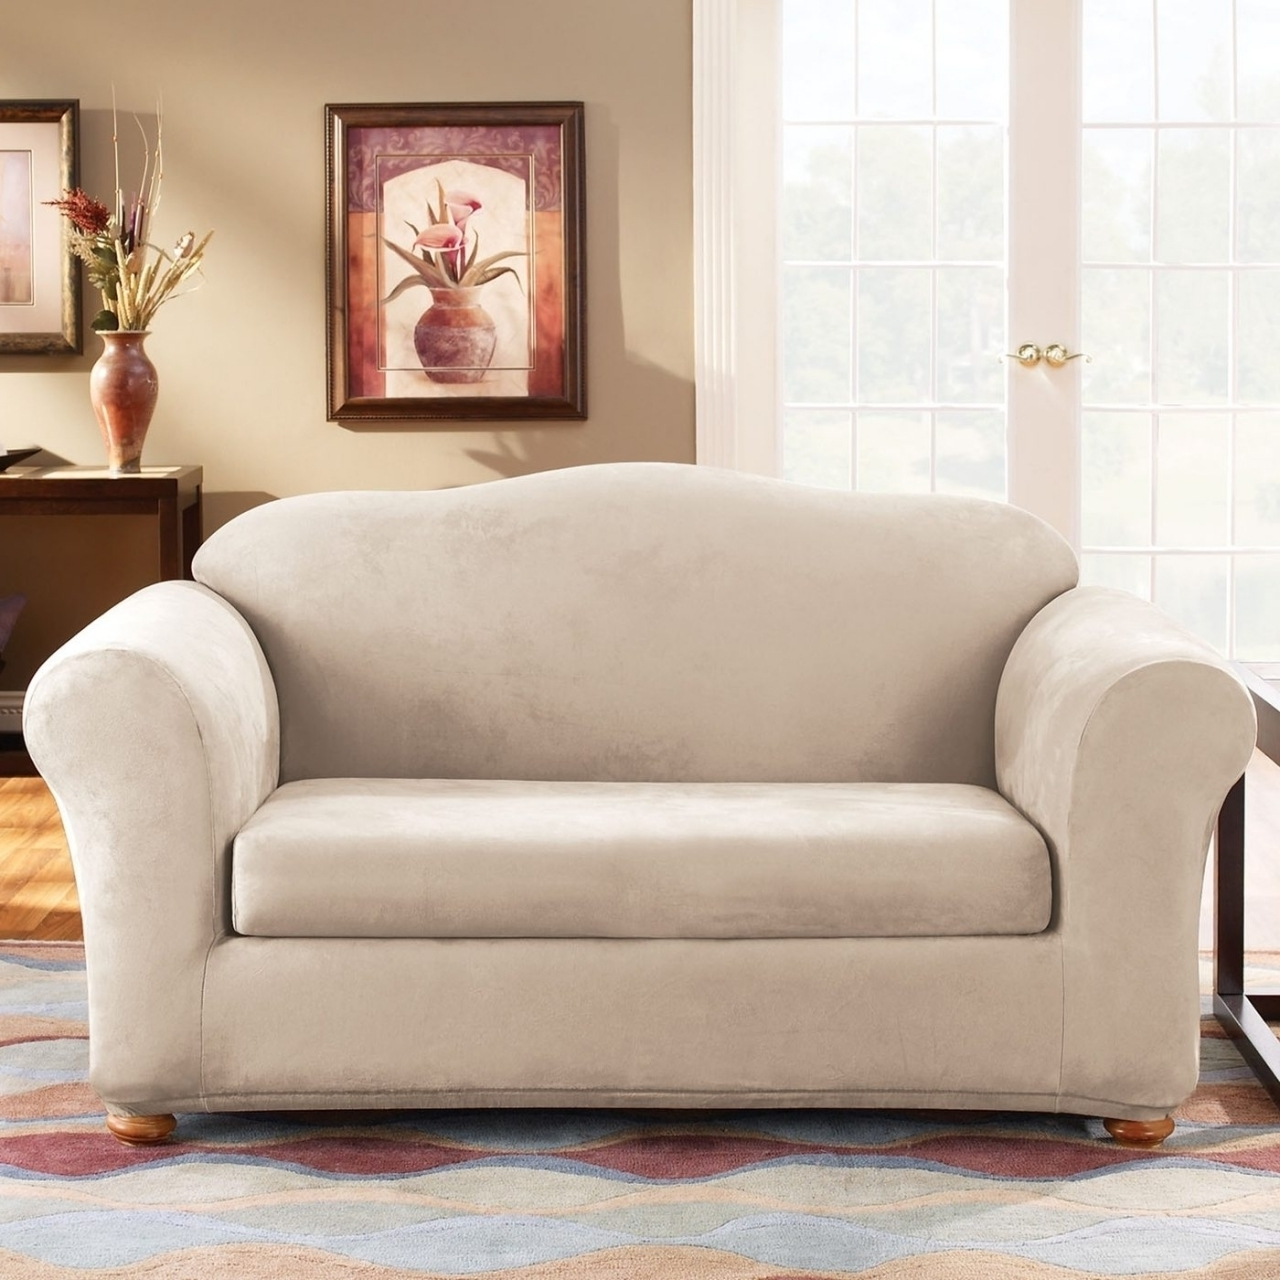 Latest Kmart Sectional Sofa – Hotelsbacau With Regard To Kmart Sectional Sofas (View 6 of 20)